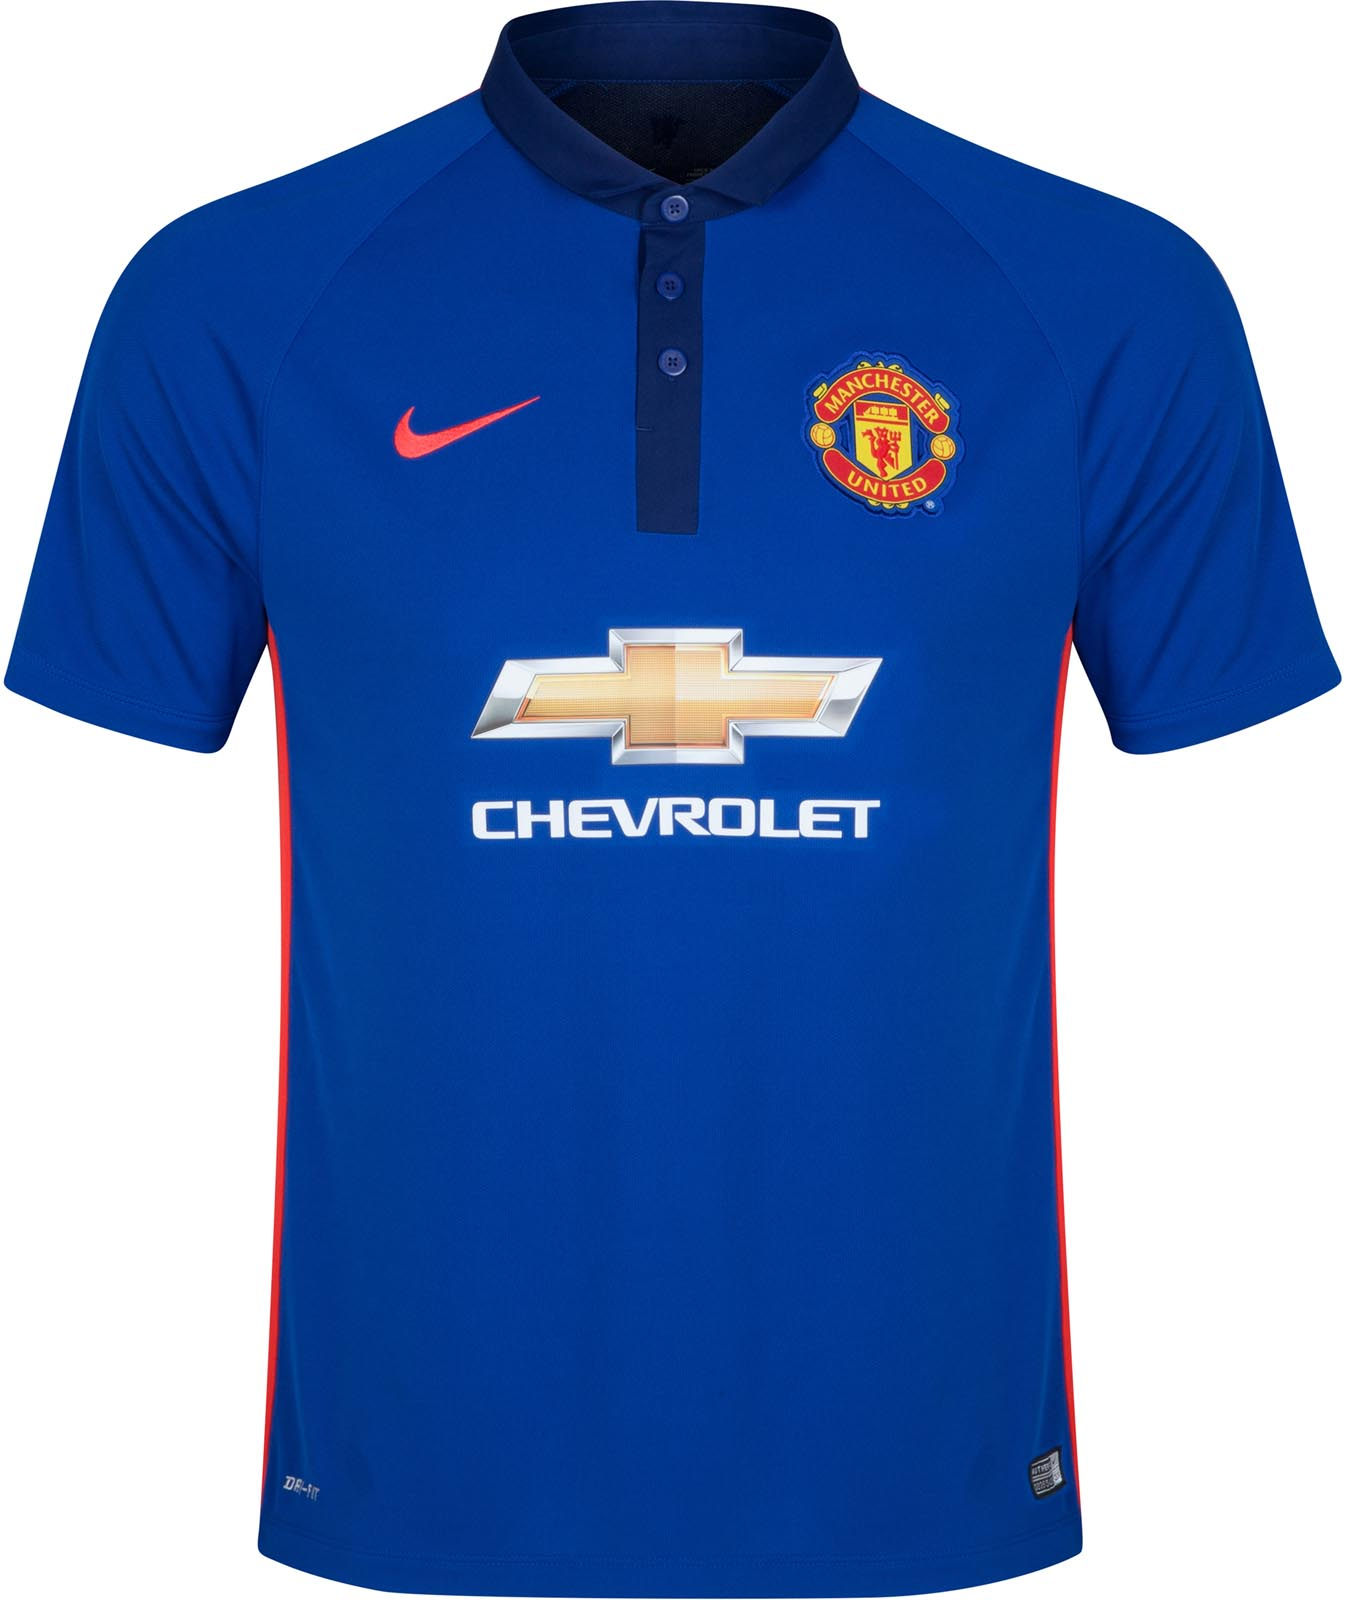 reputable site 10111 173e8 MANCHESTER UNITED JERSEYS - Nusrene Nama